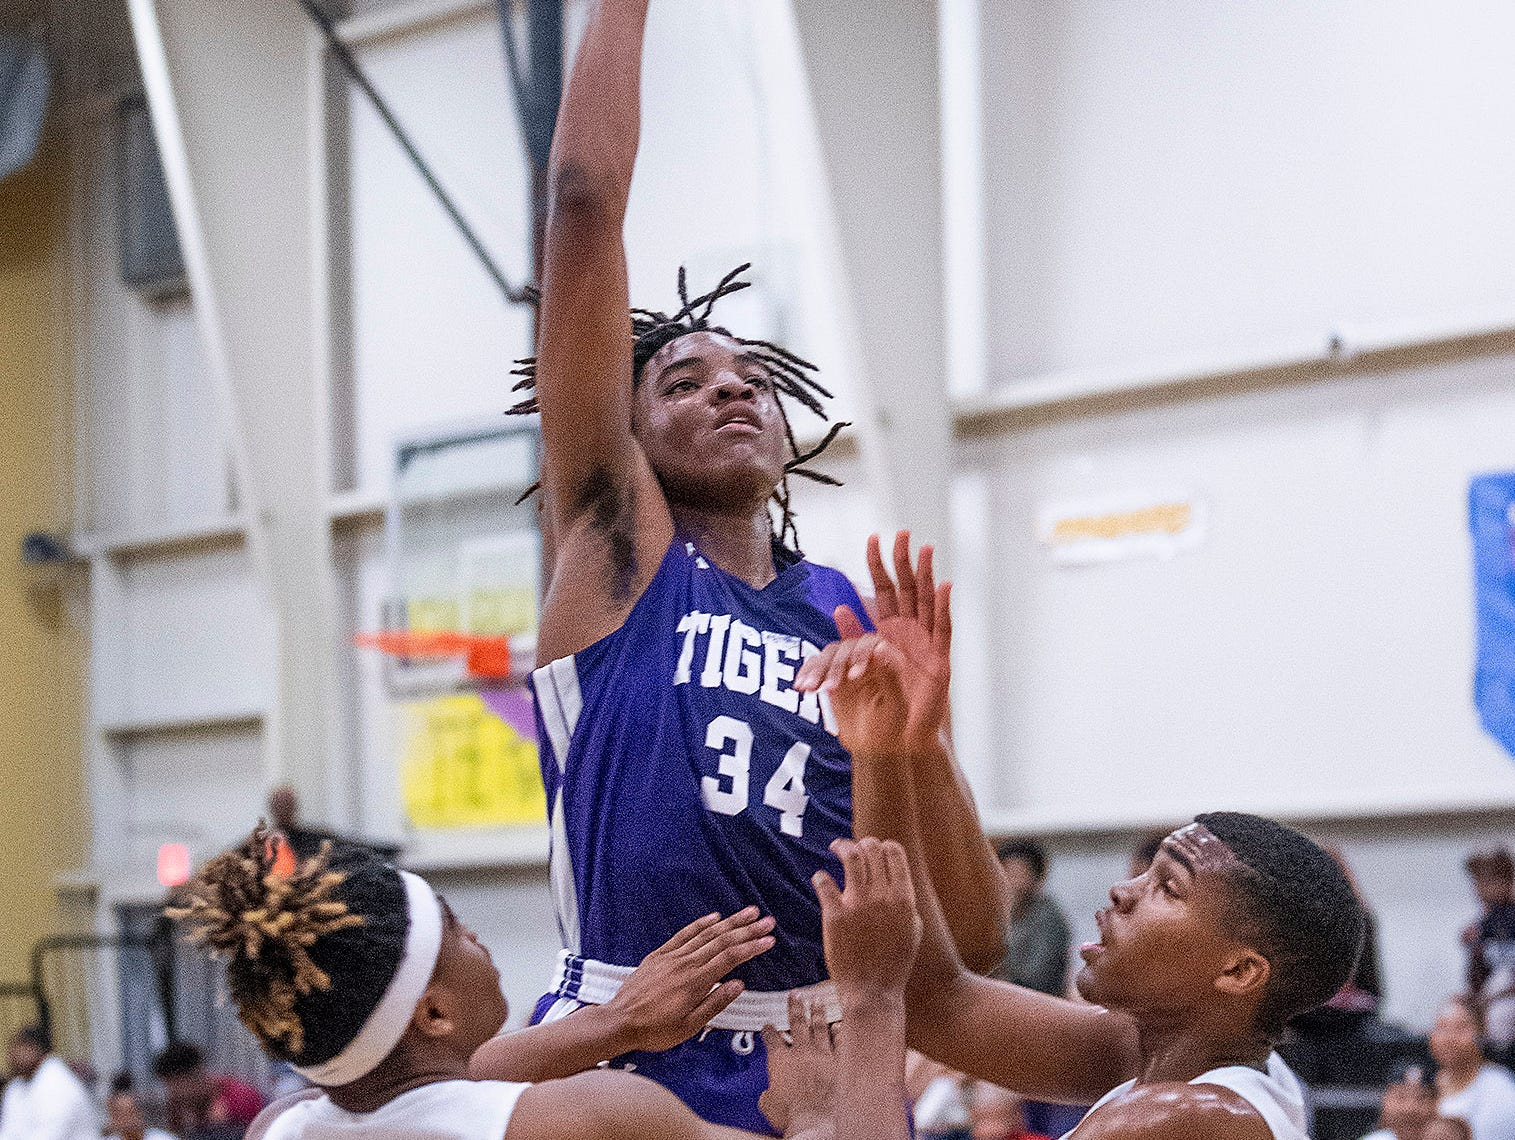 Tallassee's Tyrek Turner (34) shoots against Brewbaker Tech at the BrewTech campus in Montgomery, Ala., on Thursday February 7, 2019.